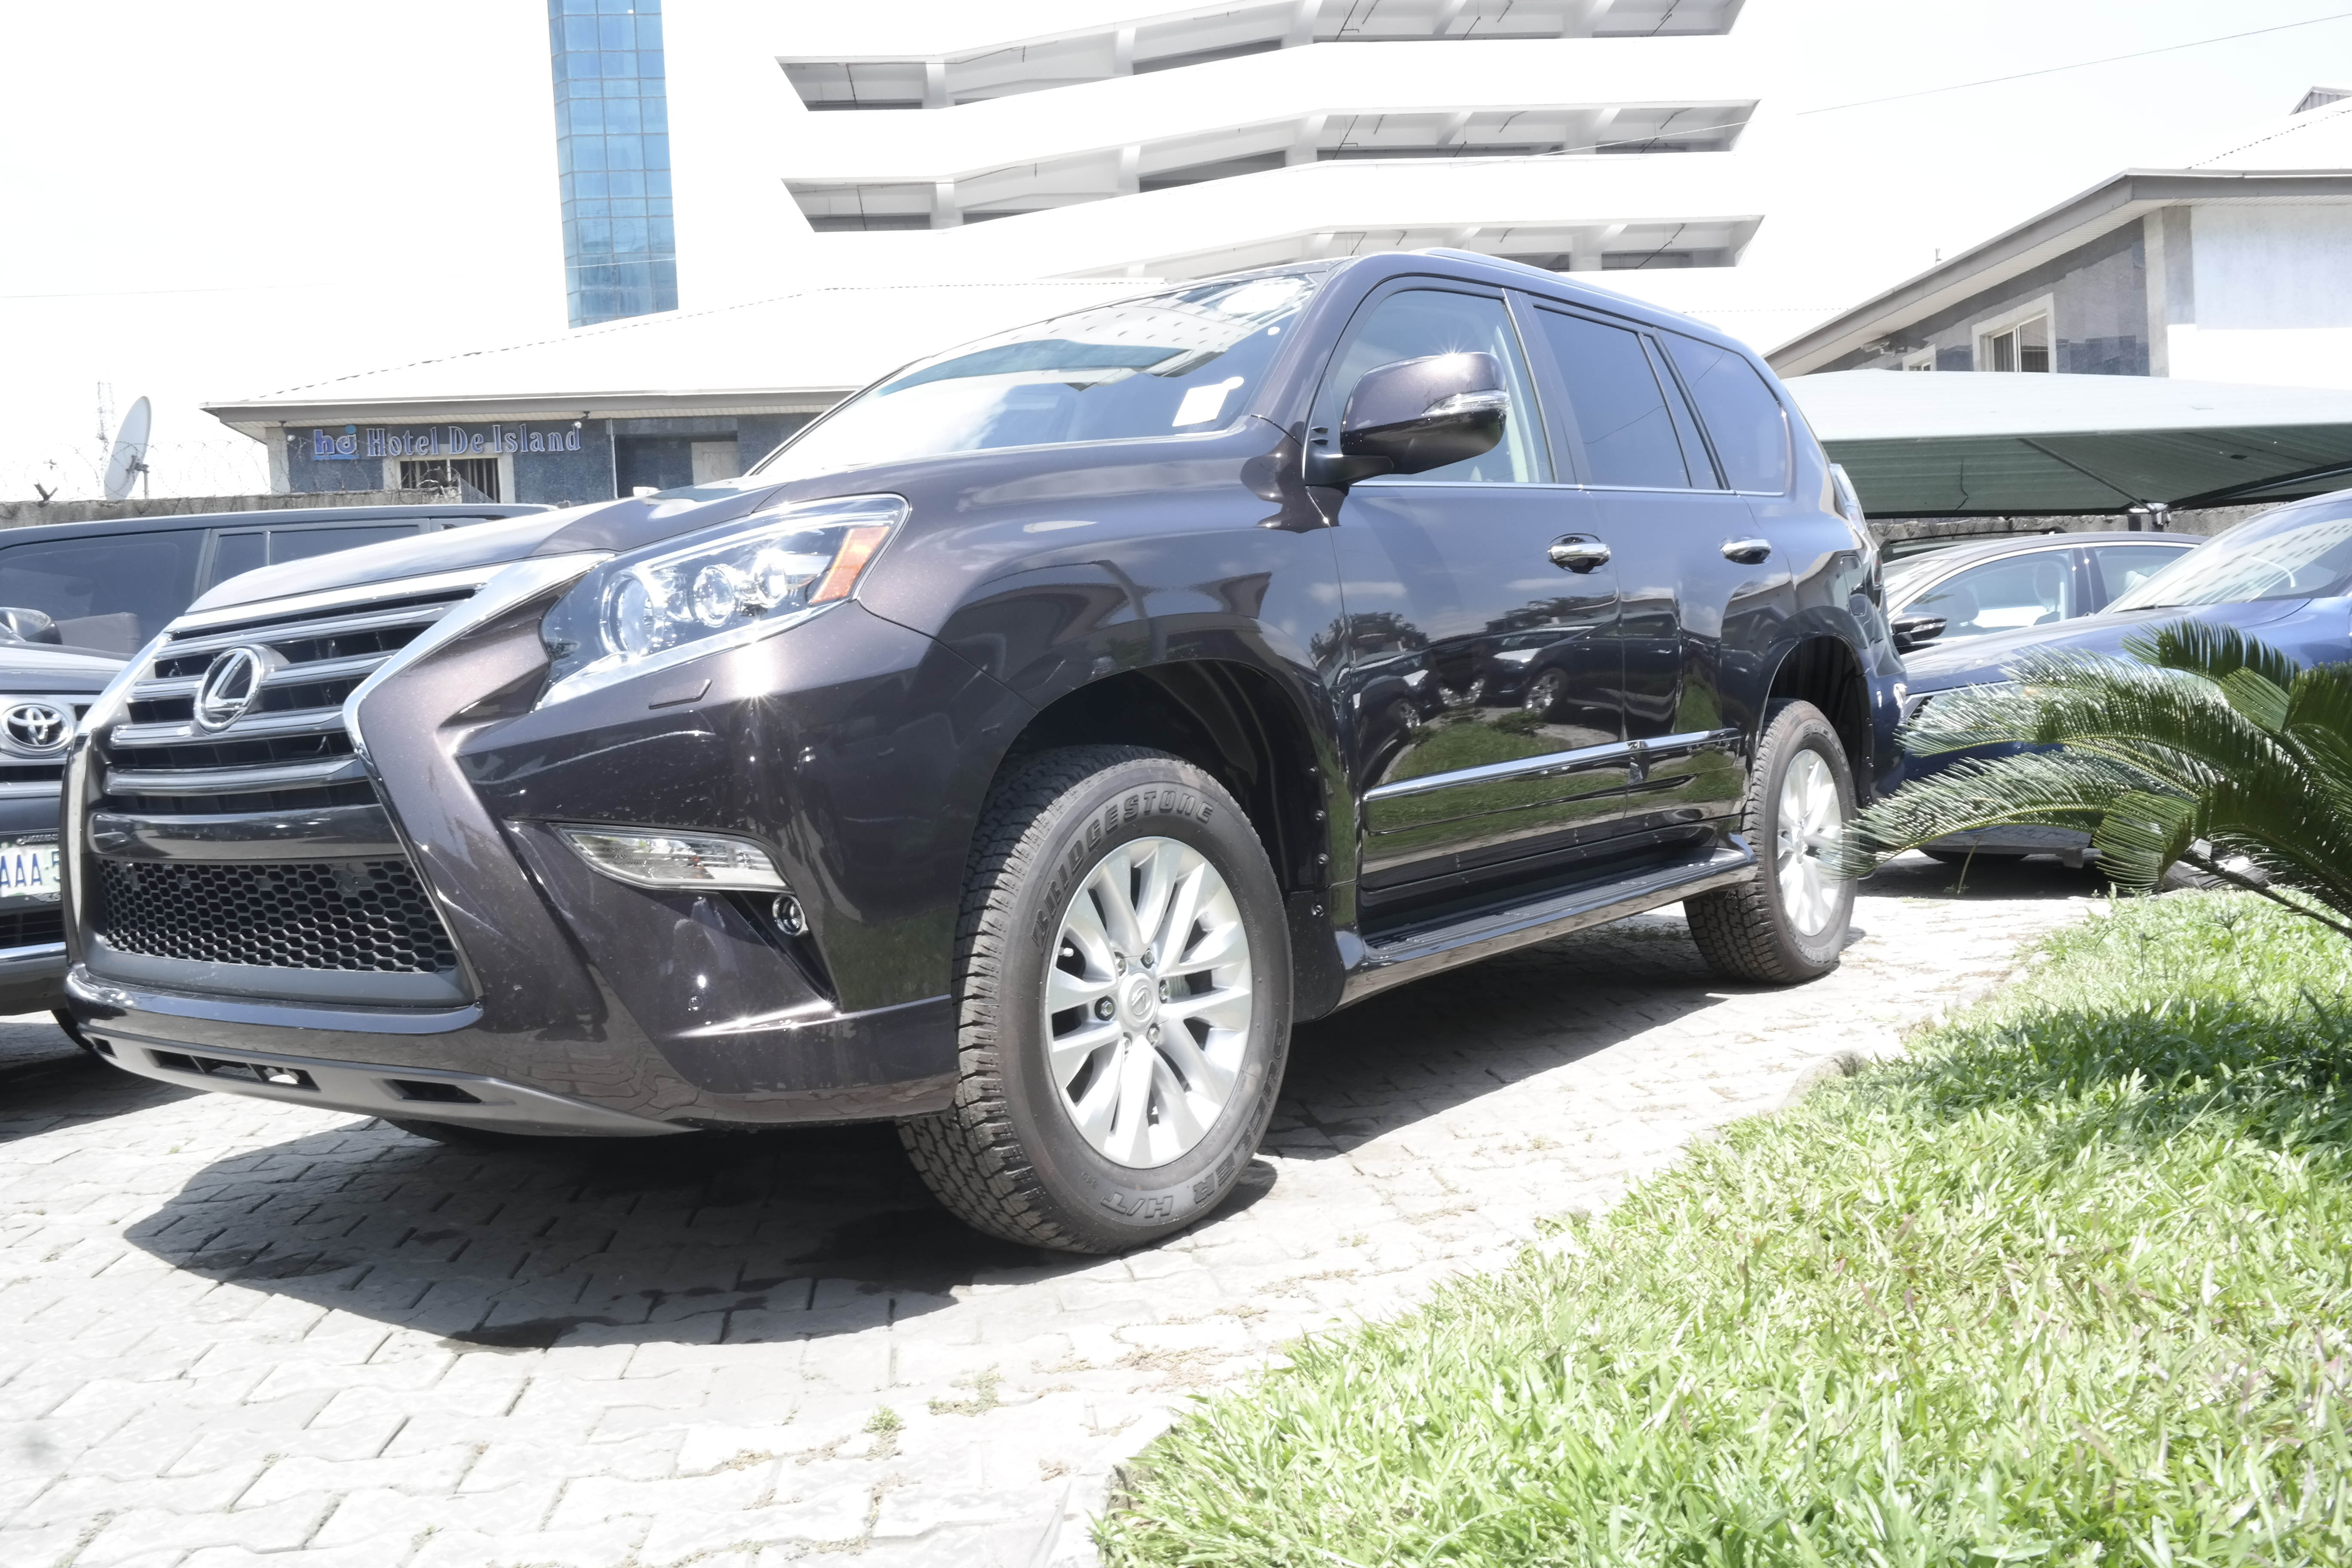 pearl large composite starfire groovecar research suv lexus awd gx